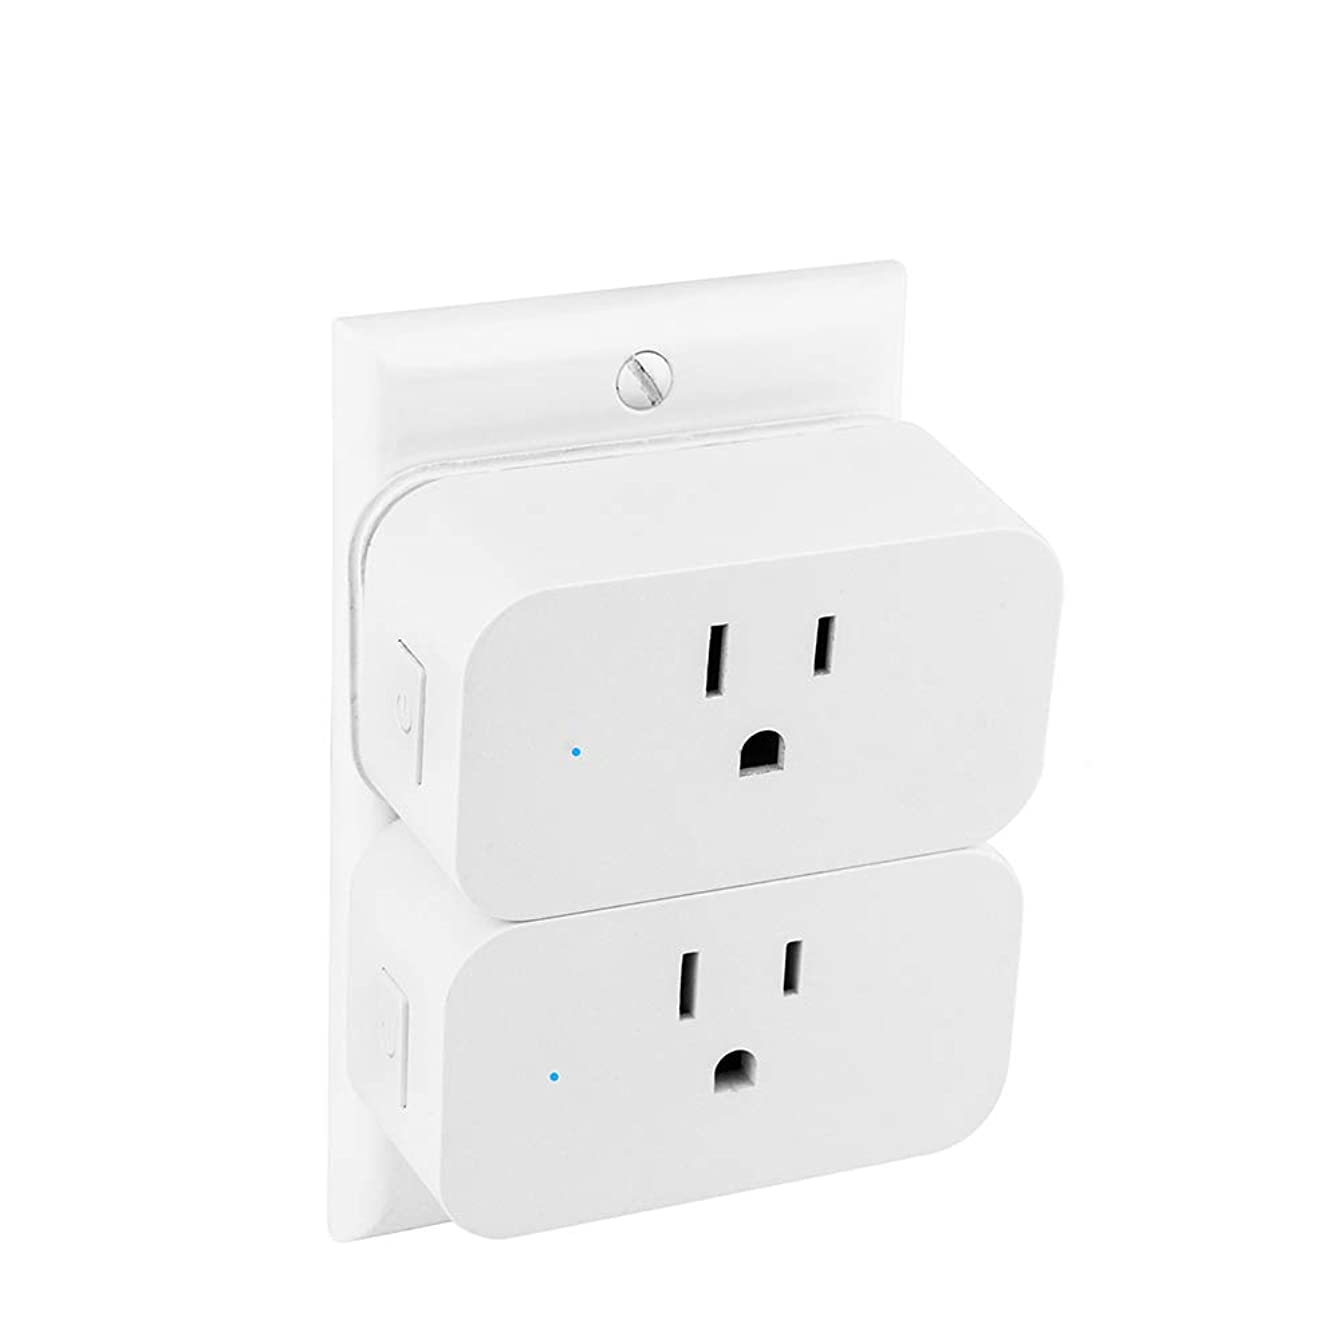 Smart Plug-Horsky 2.4 G Wifi Socket Remote Control Light Timer Compatible with Alexa Echo Google Home 2 Pack